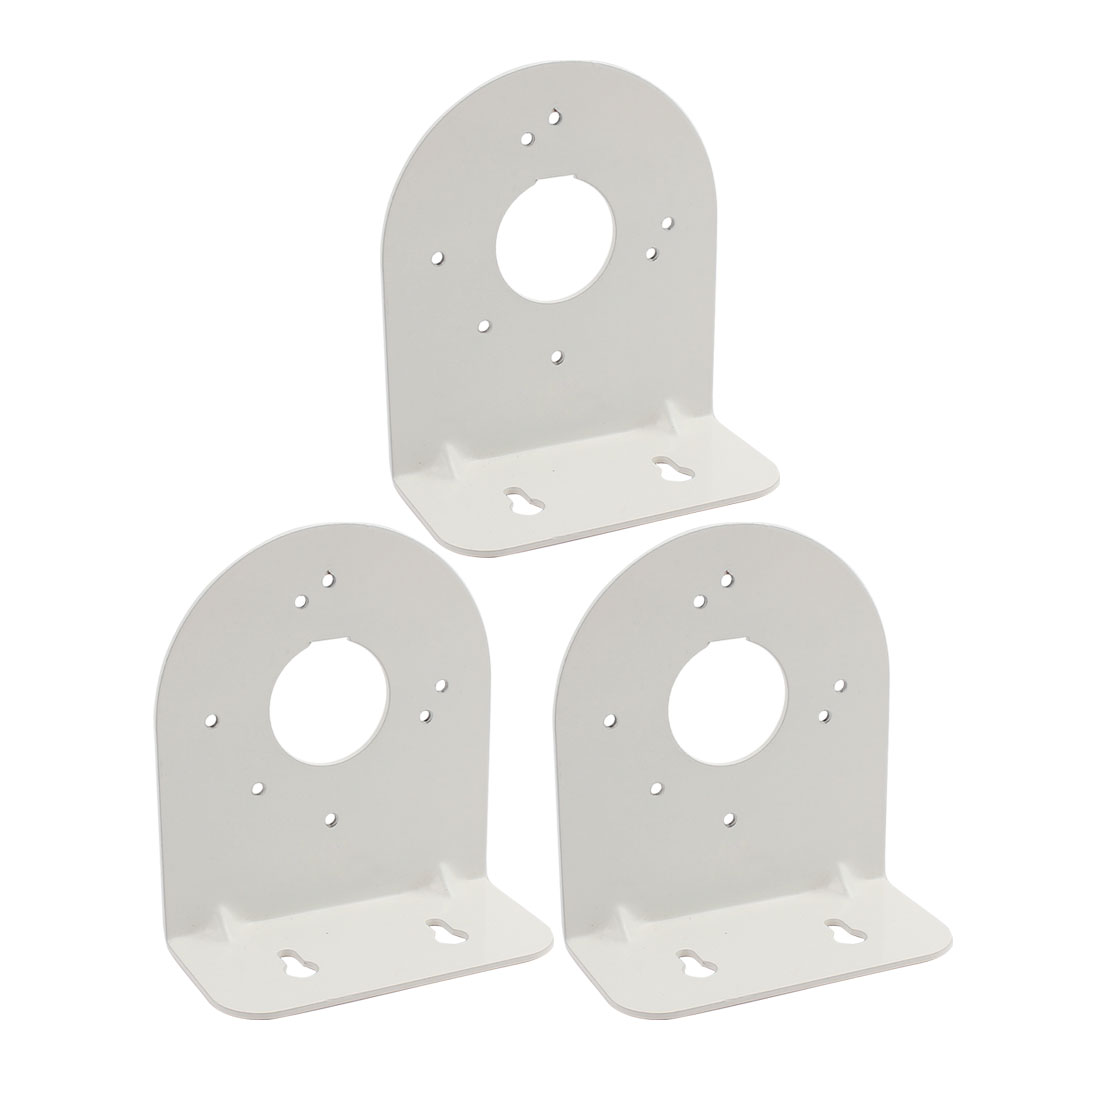 Silver Tone Right Angle CCTV Dome Camera Wall Mount Bracket 115x103x50mm 3Pcs